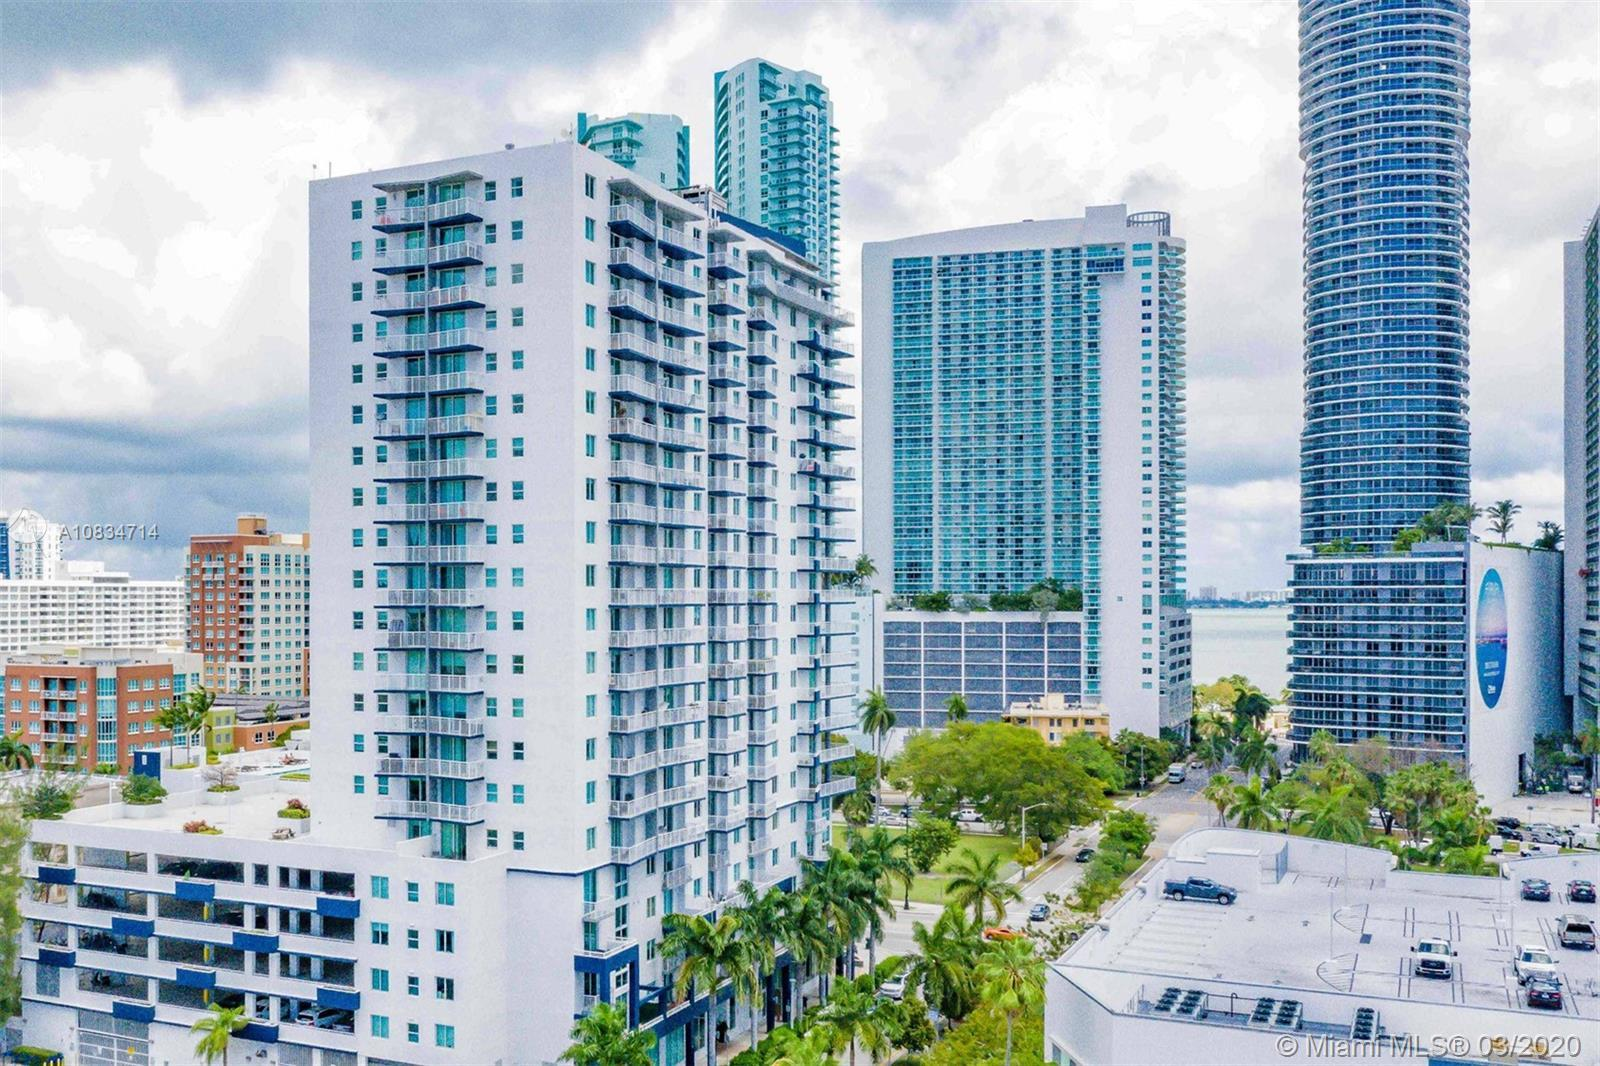 Cozy and spacious apartment located in Biscayne Plaza. Great neighboorhood. Unit with 3 bedrooms and